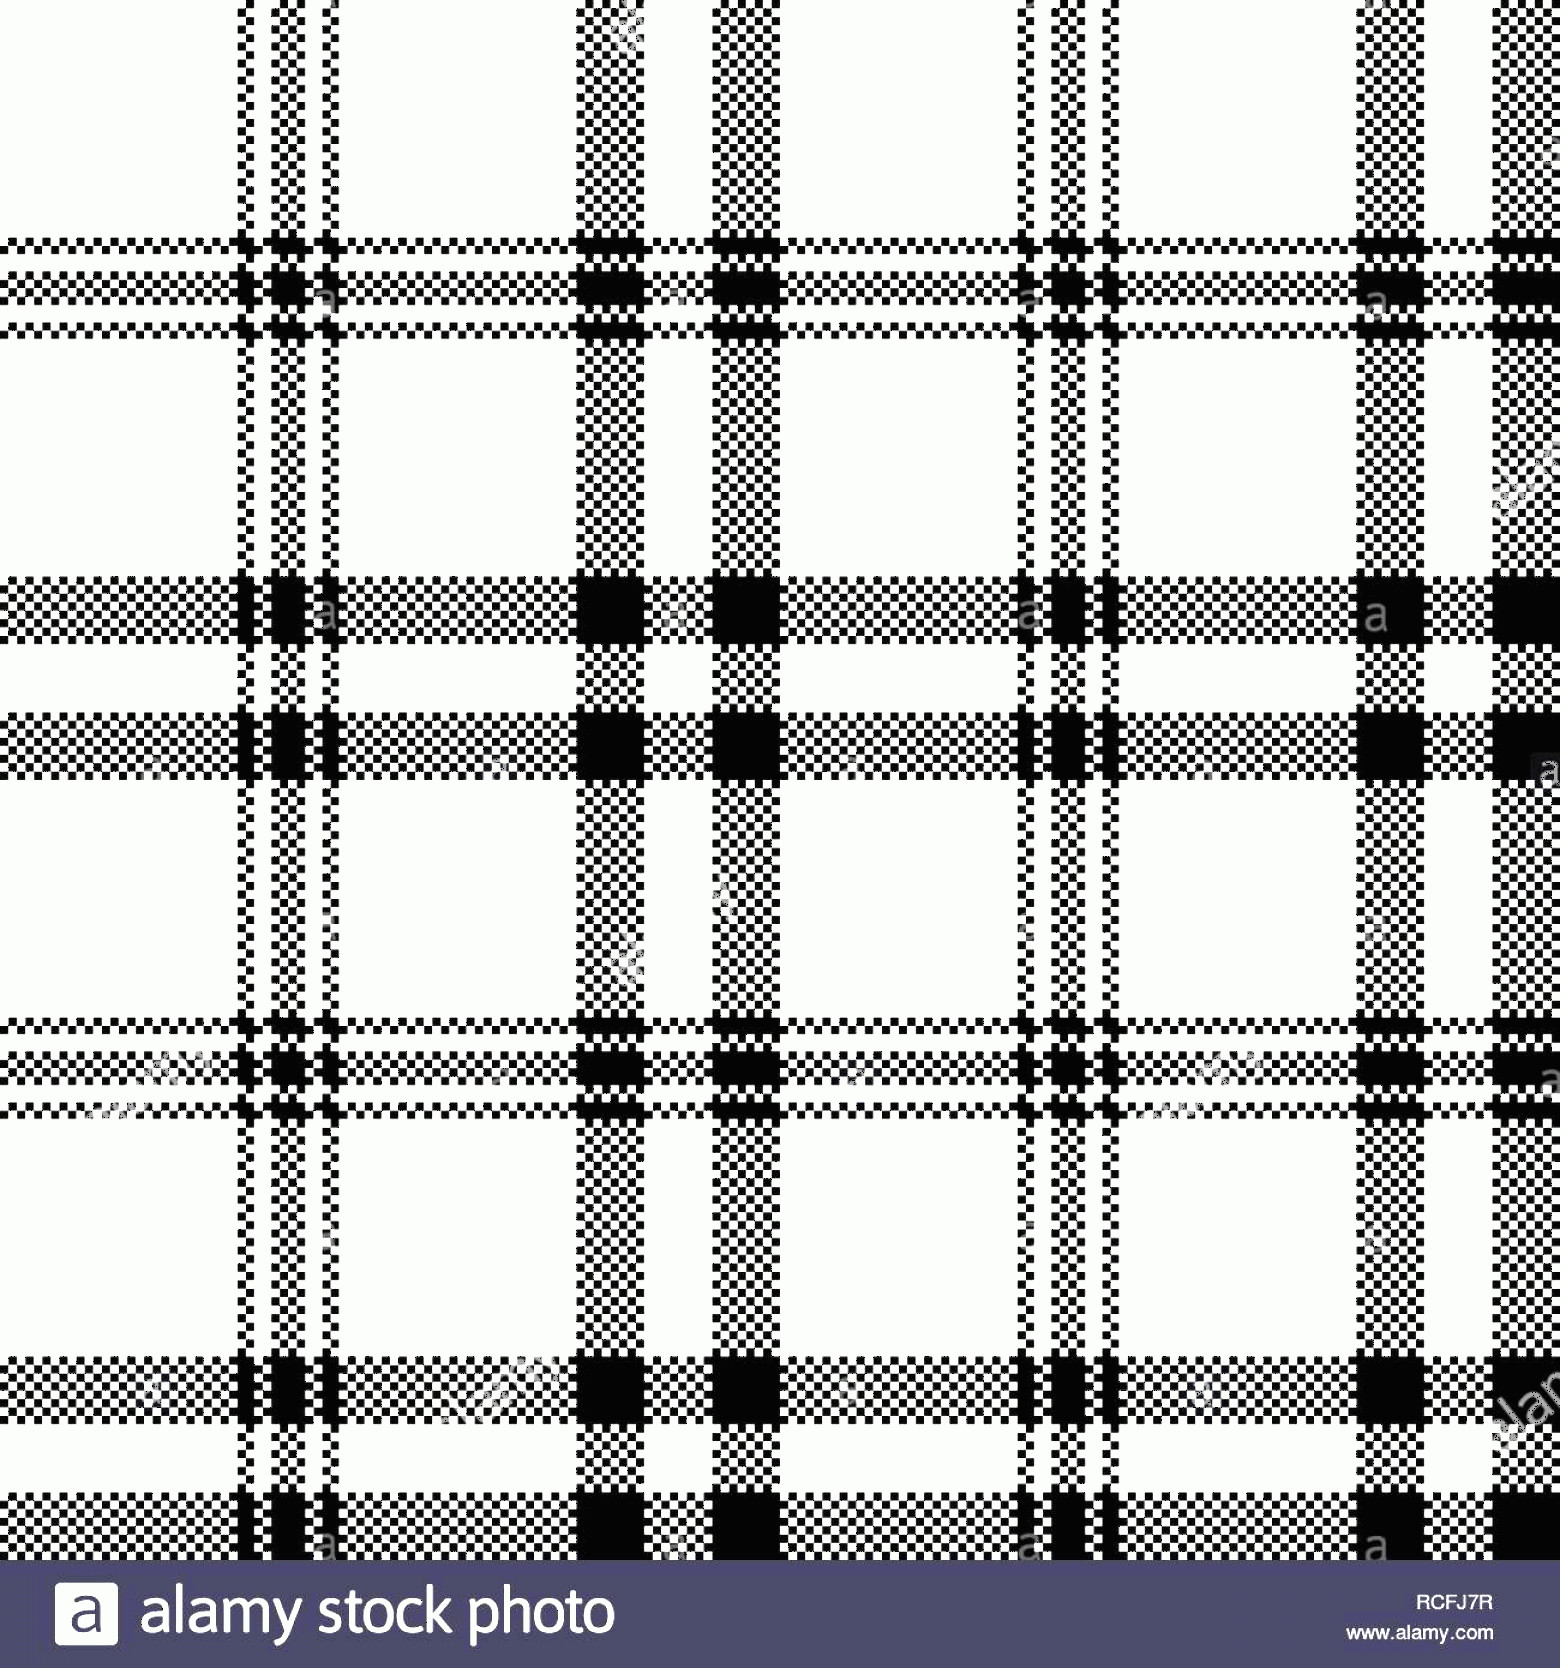 Plaid Vector: Simple Black White Check Plaid Seamless Pattern Vector Illustration Image